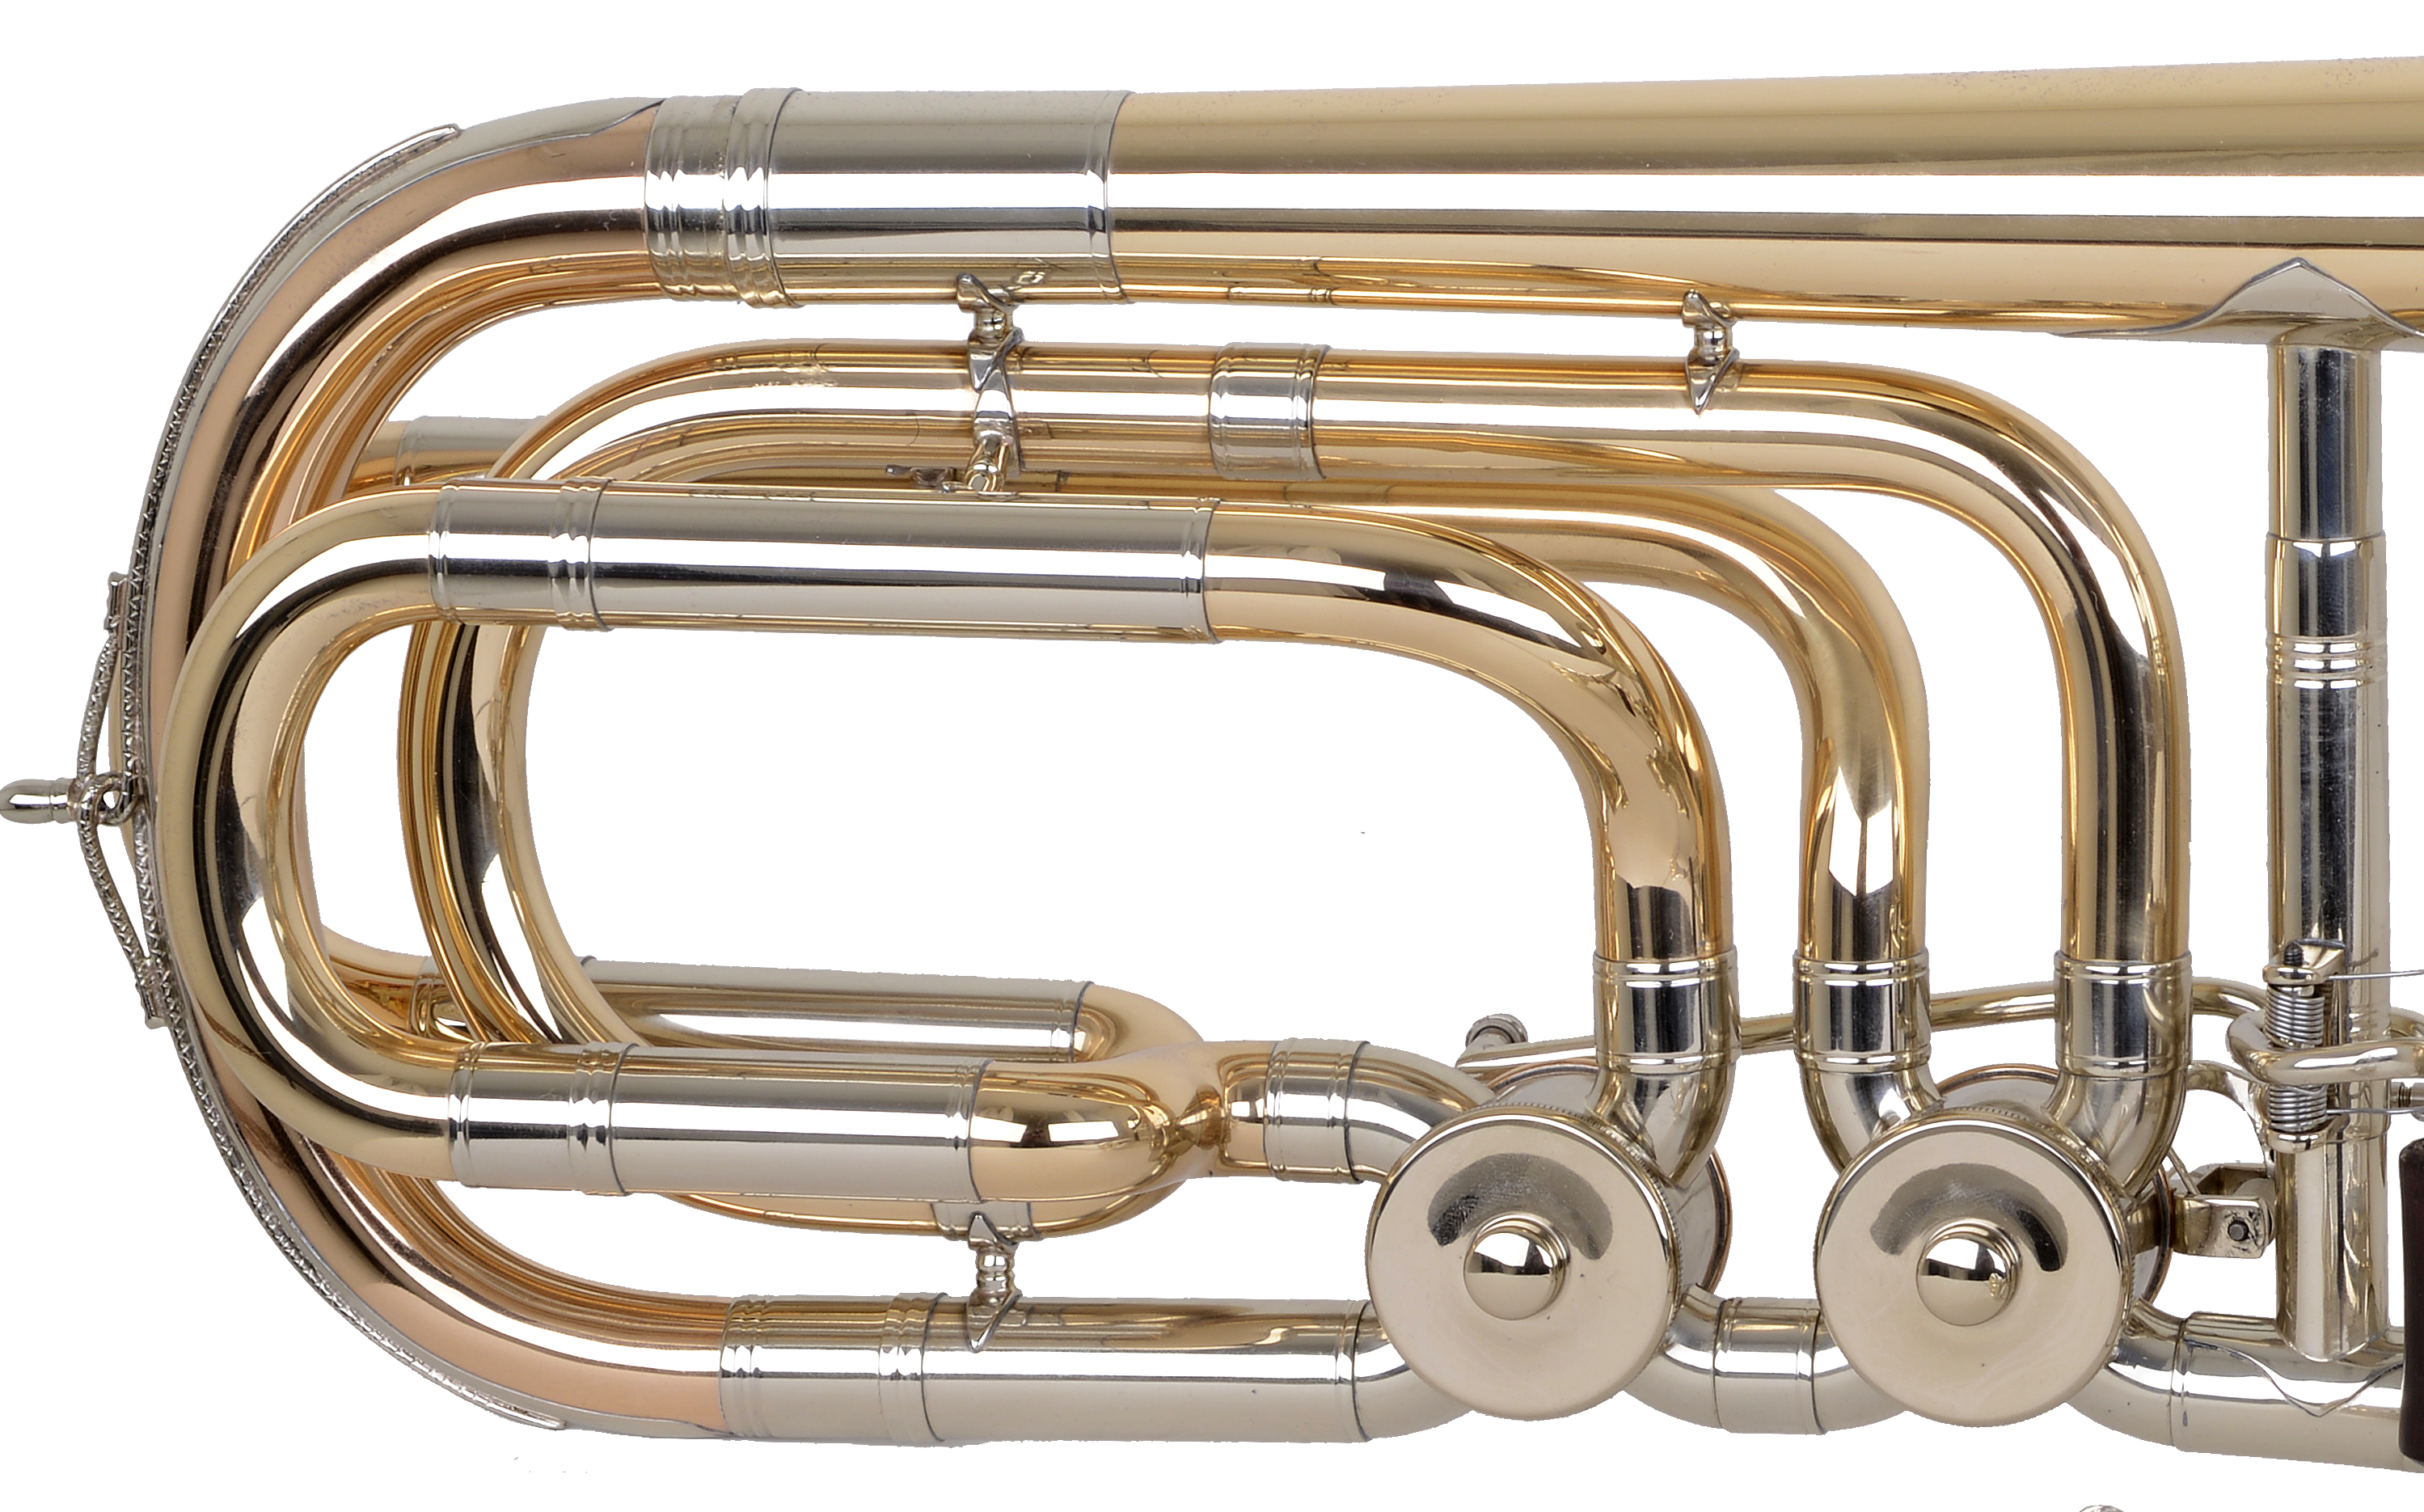 Bass trombone, open-flow valves, traditional wrap